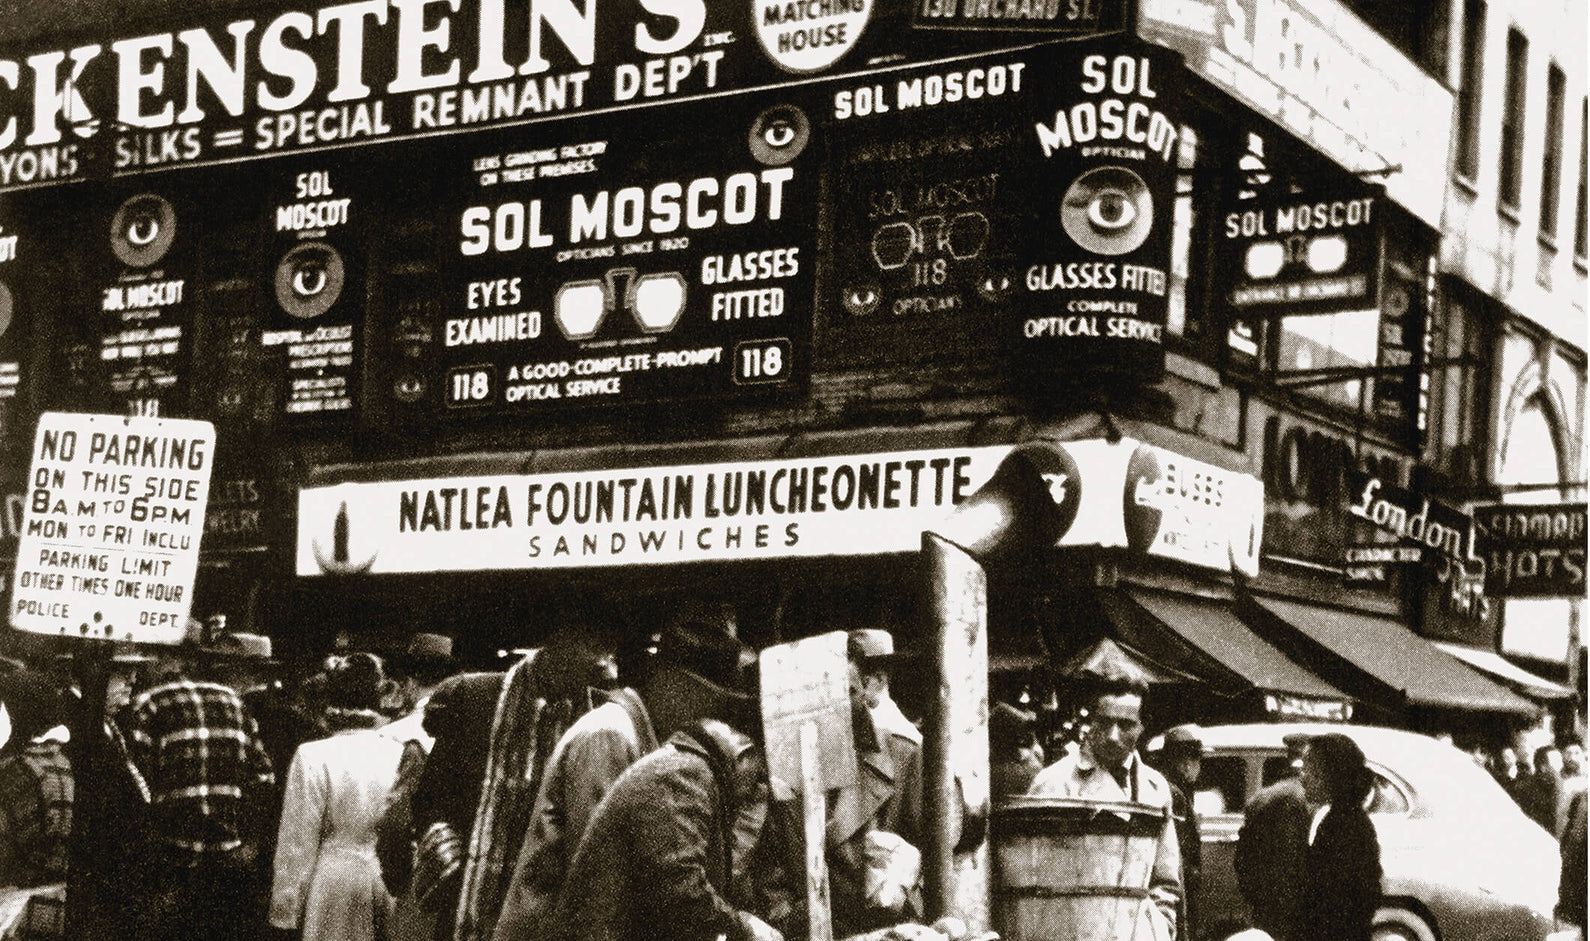 By 1936, MOSCOT was settled at 118 Orchard Street, on the corner of Delancey Street, which would be its home for the next eight decades.